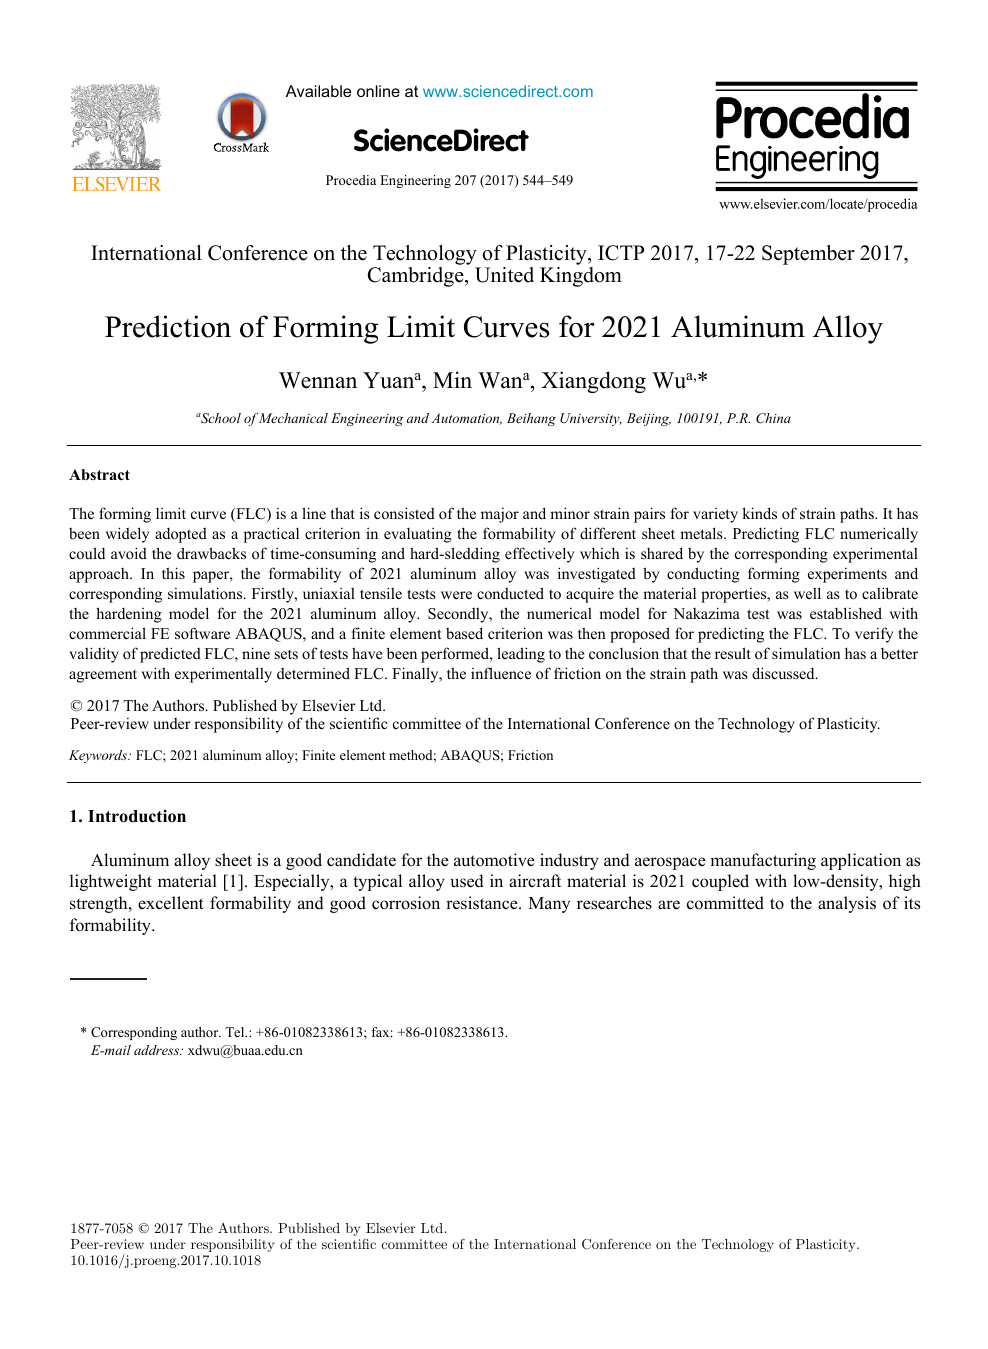 Prediction of Forming Limit Curves for 2021 Aluminum Alloy – topic